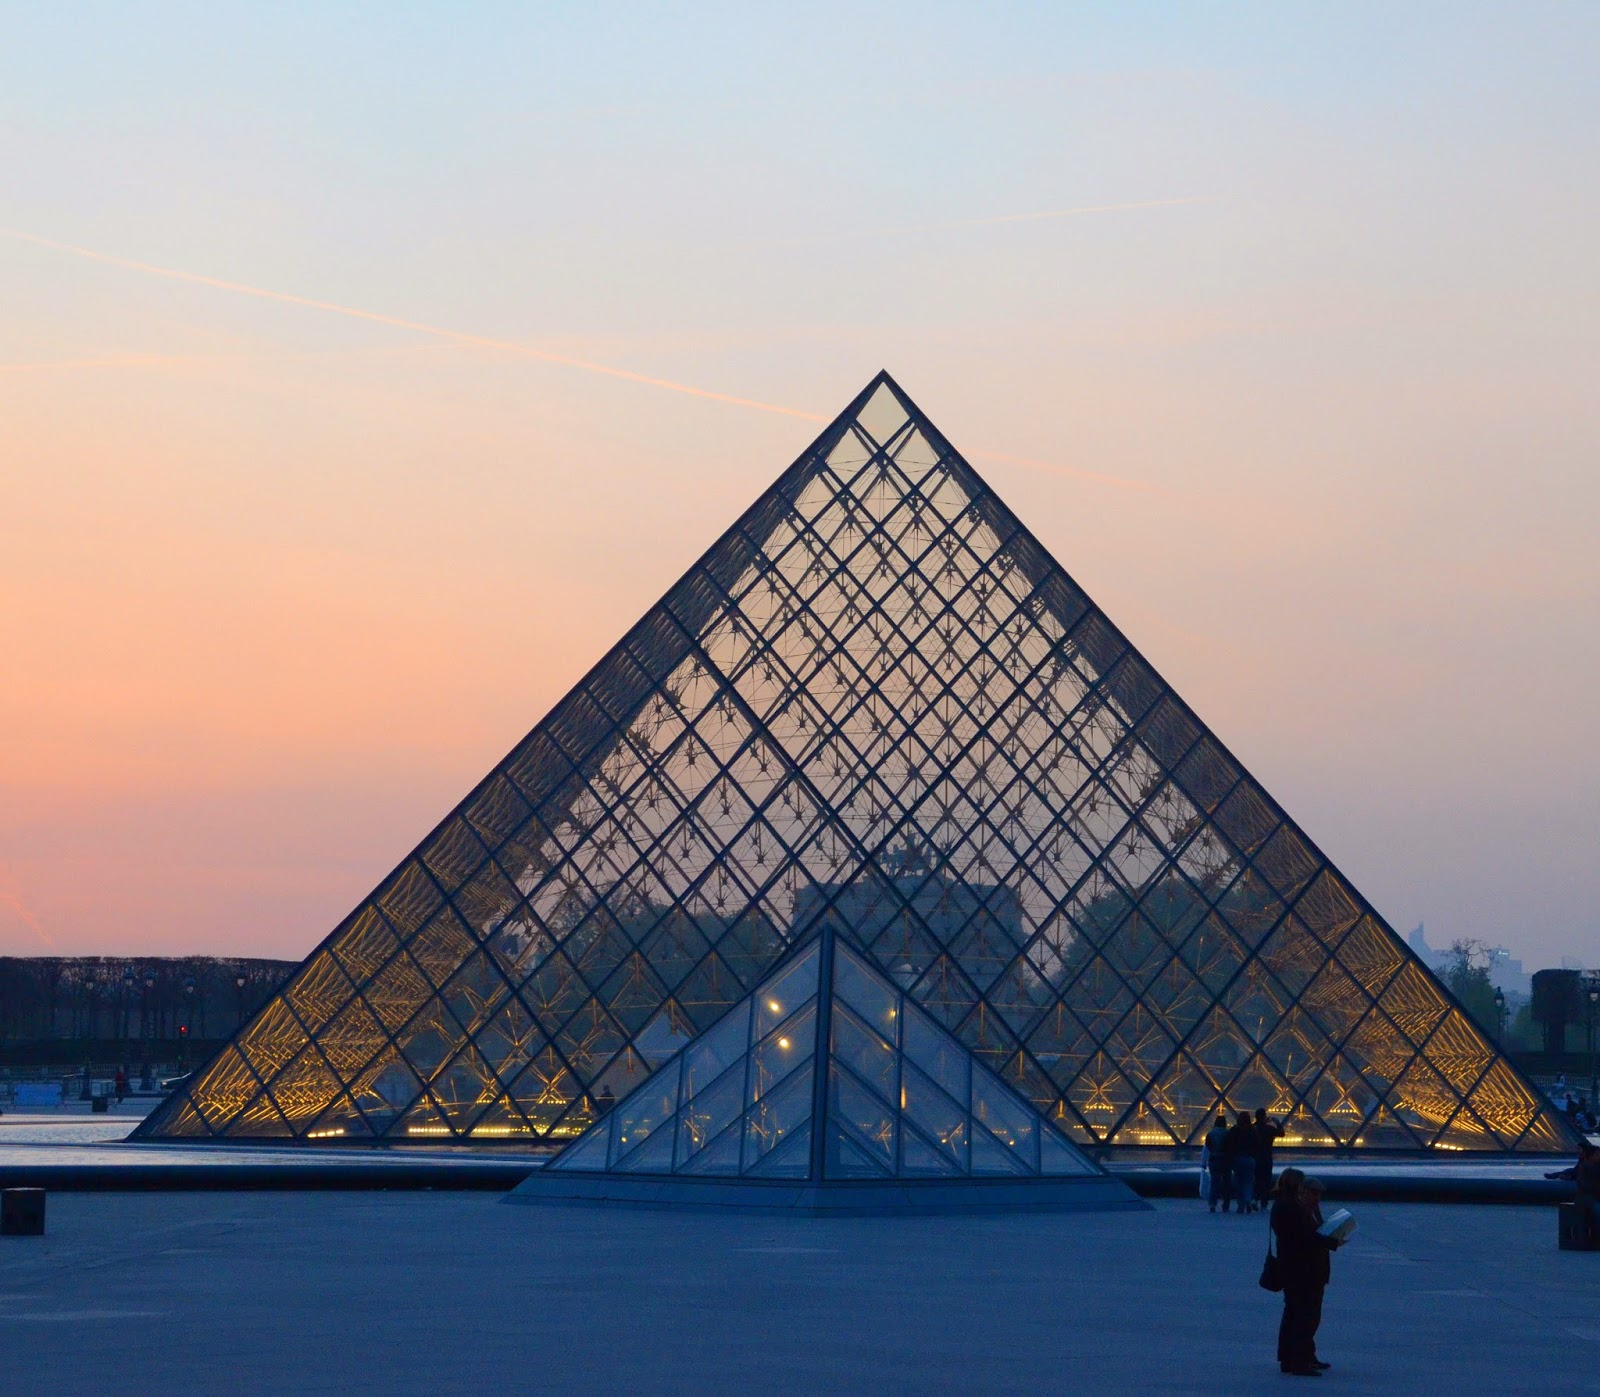 Pyramide du Louvre - City Daily Photo Theme Day: triangles